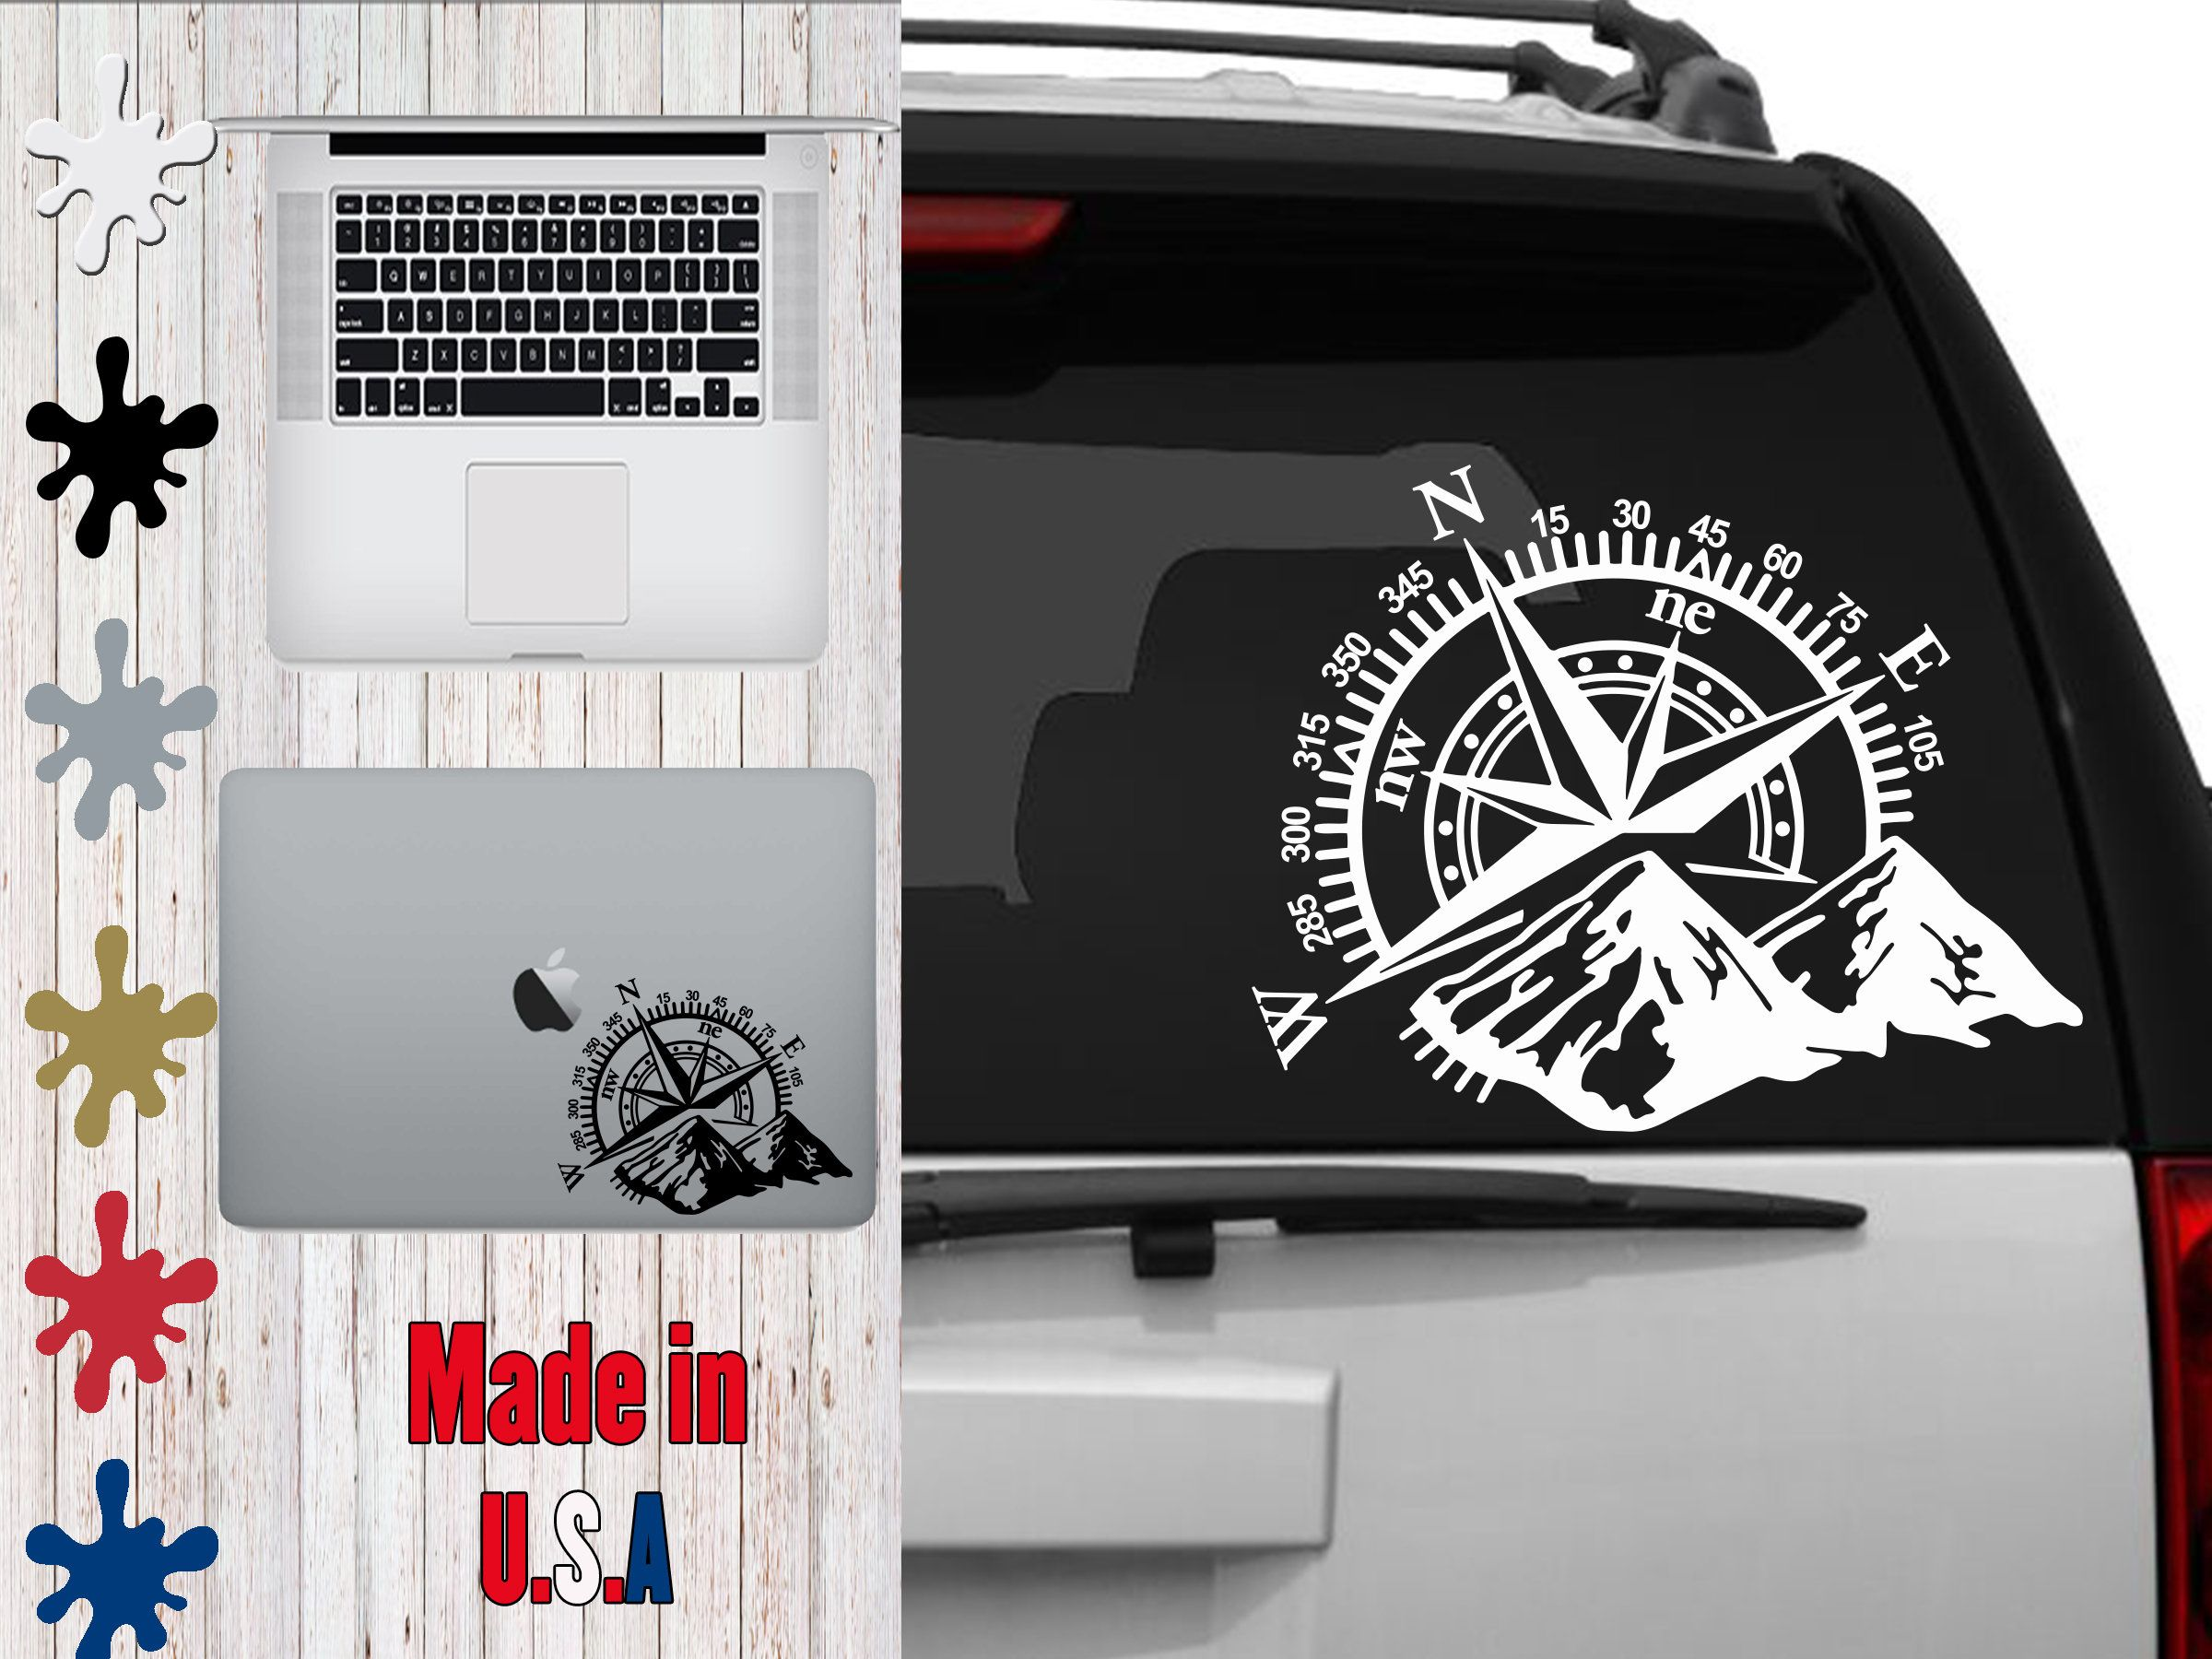 Mountain Compass Car Decal Choose Your Size Car Decal Laptop Decal Mug Decal Tumbler Decal Cup Decal Phone Decal Phone Decals Car Compass Tumbler Decal [ 1800 x 2400 Pixel ]